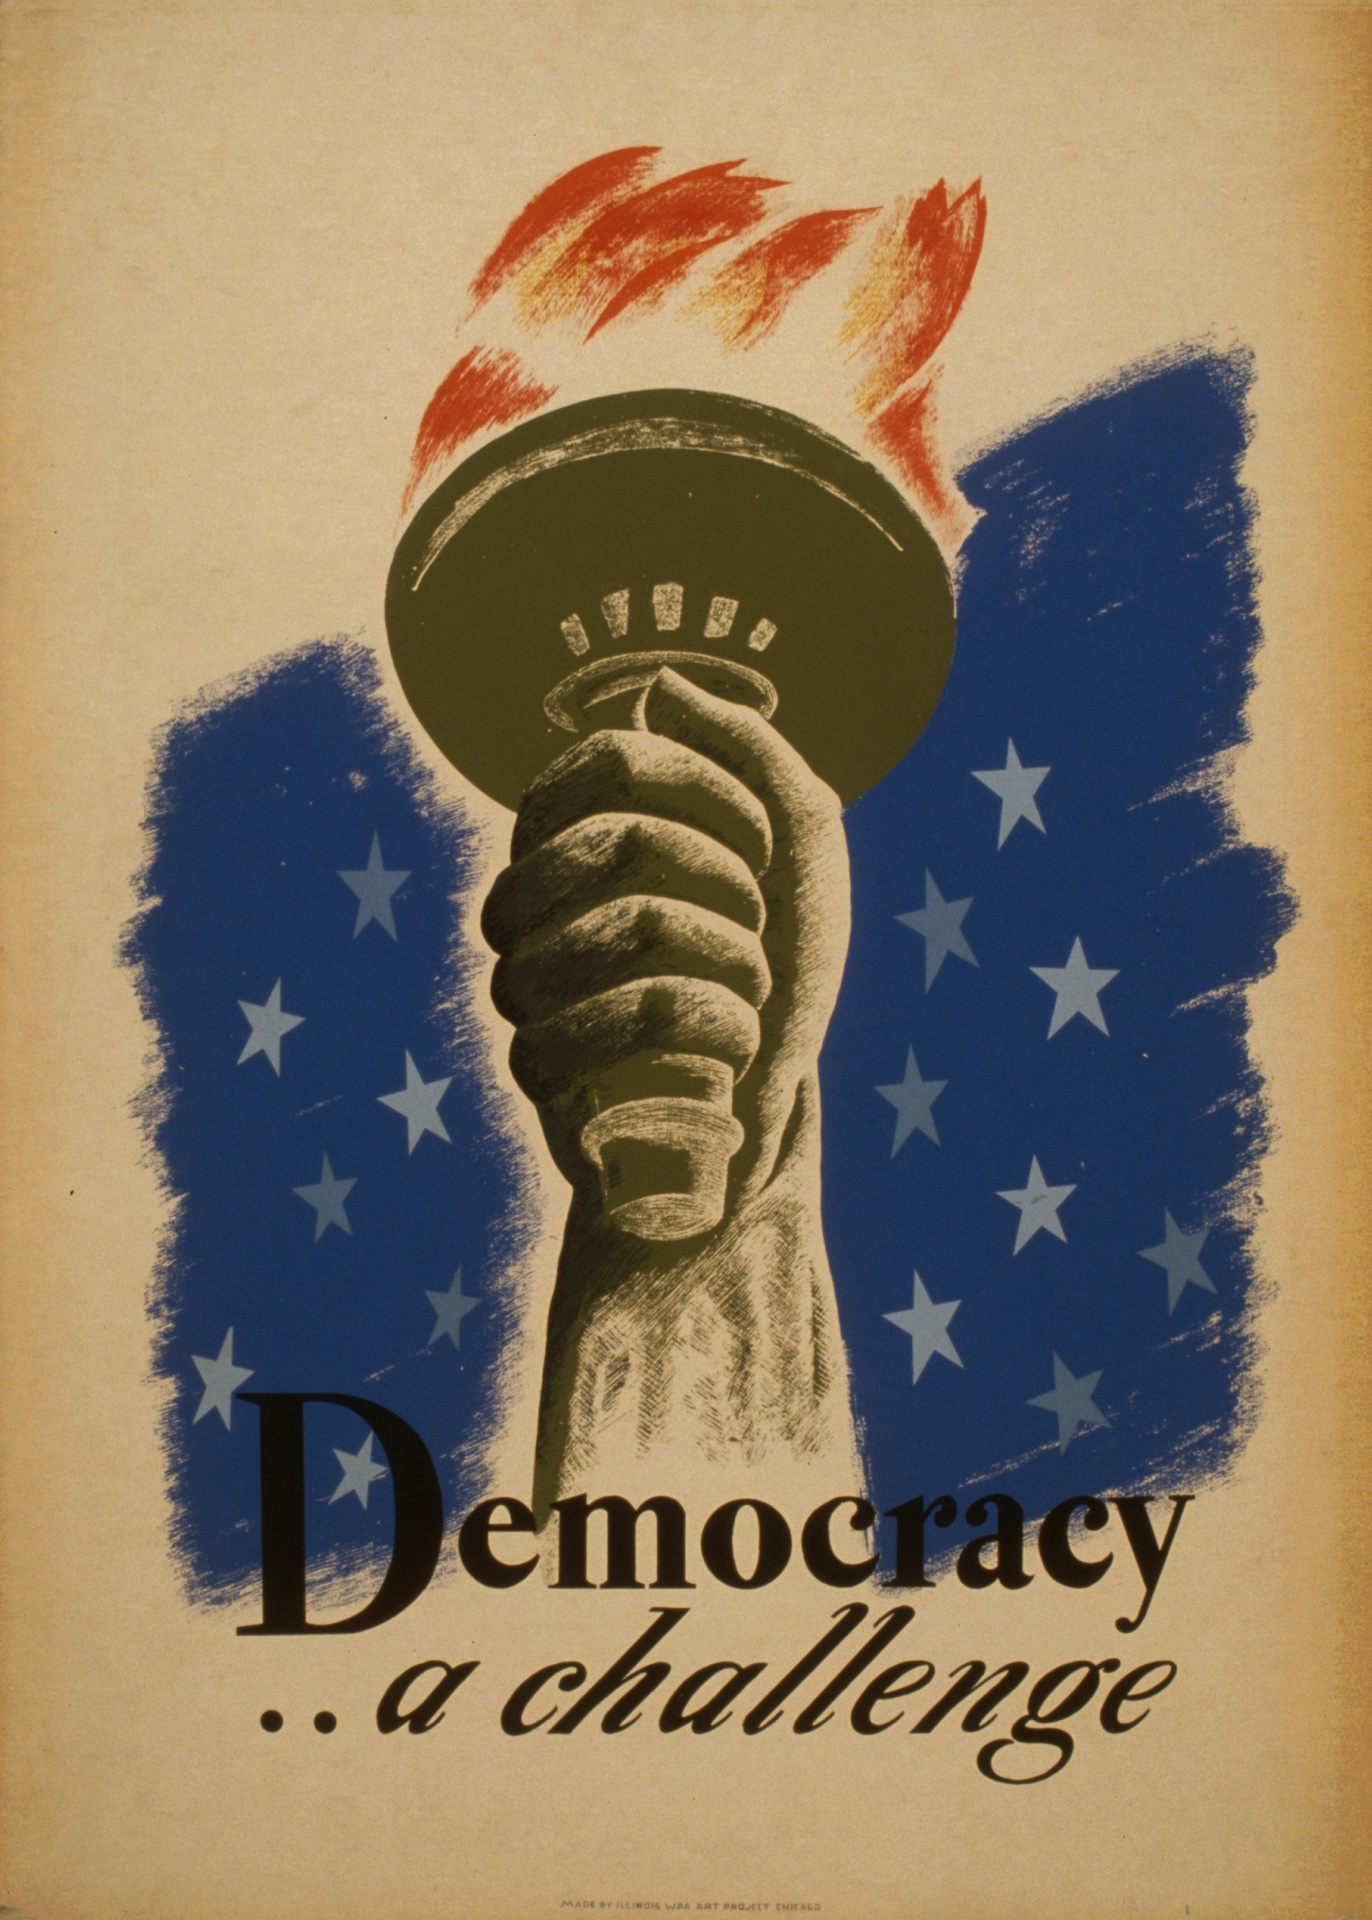 Photo Poster Vintage Democracy Poster Free Stock Photo Public Domain